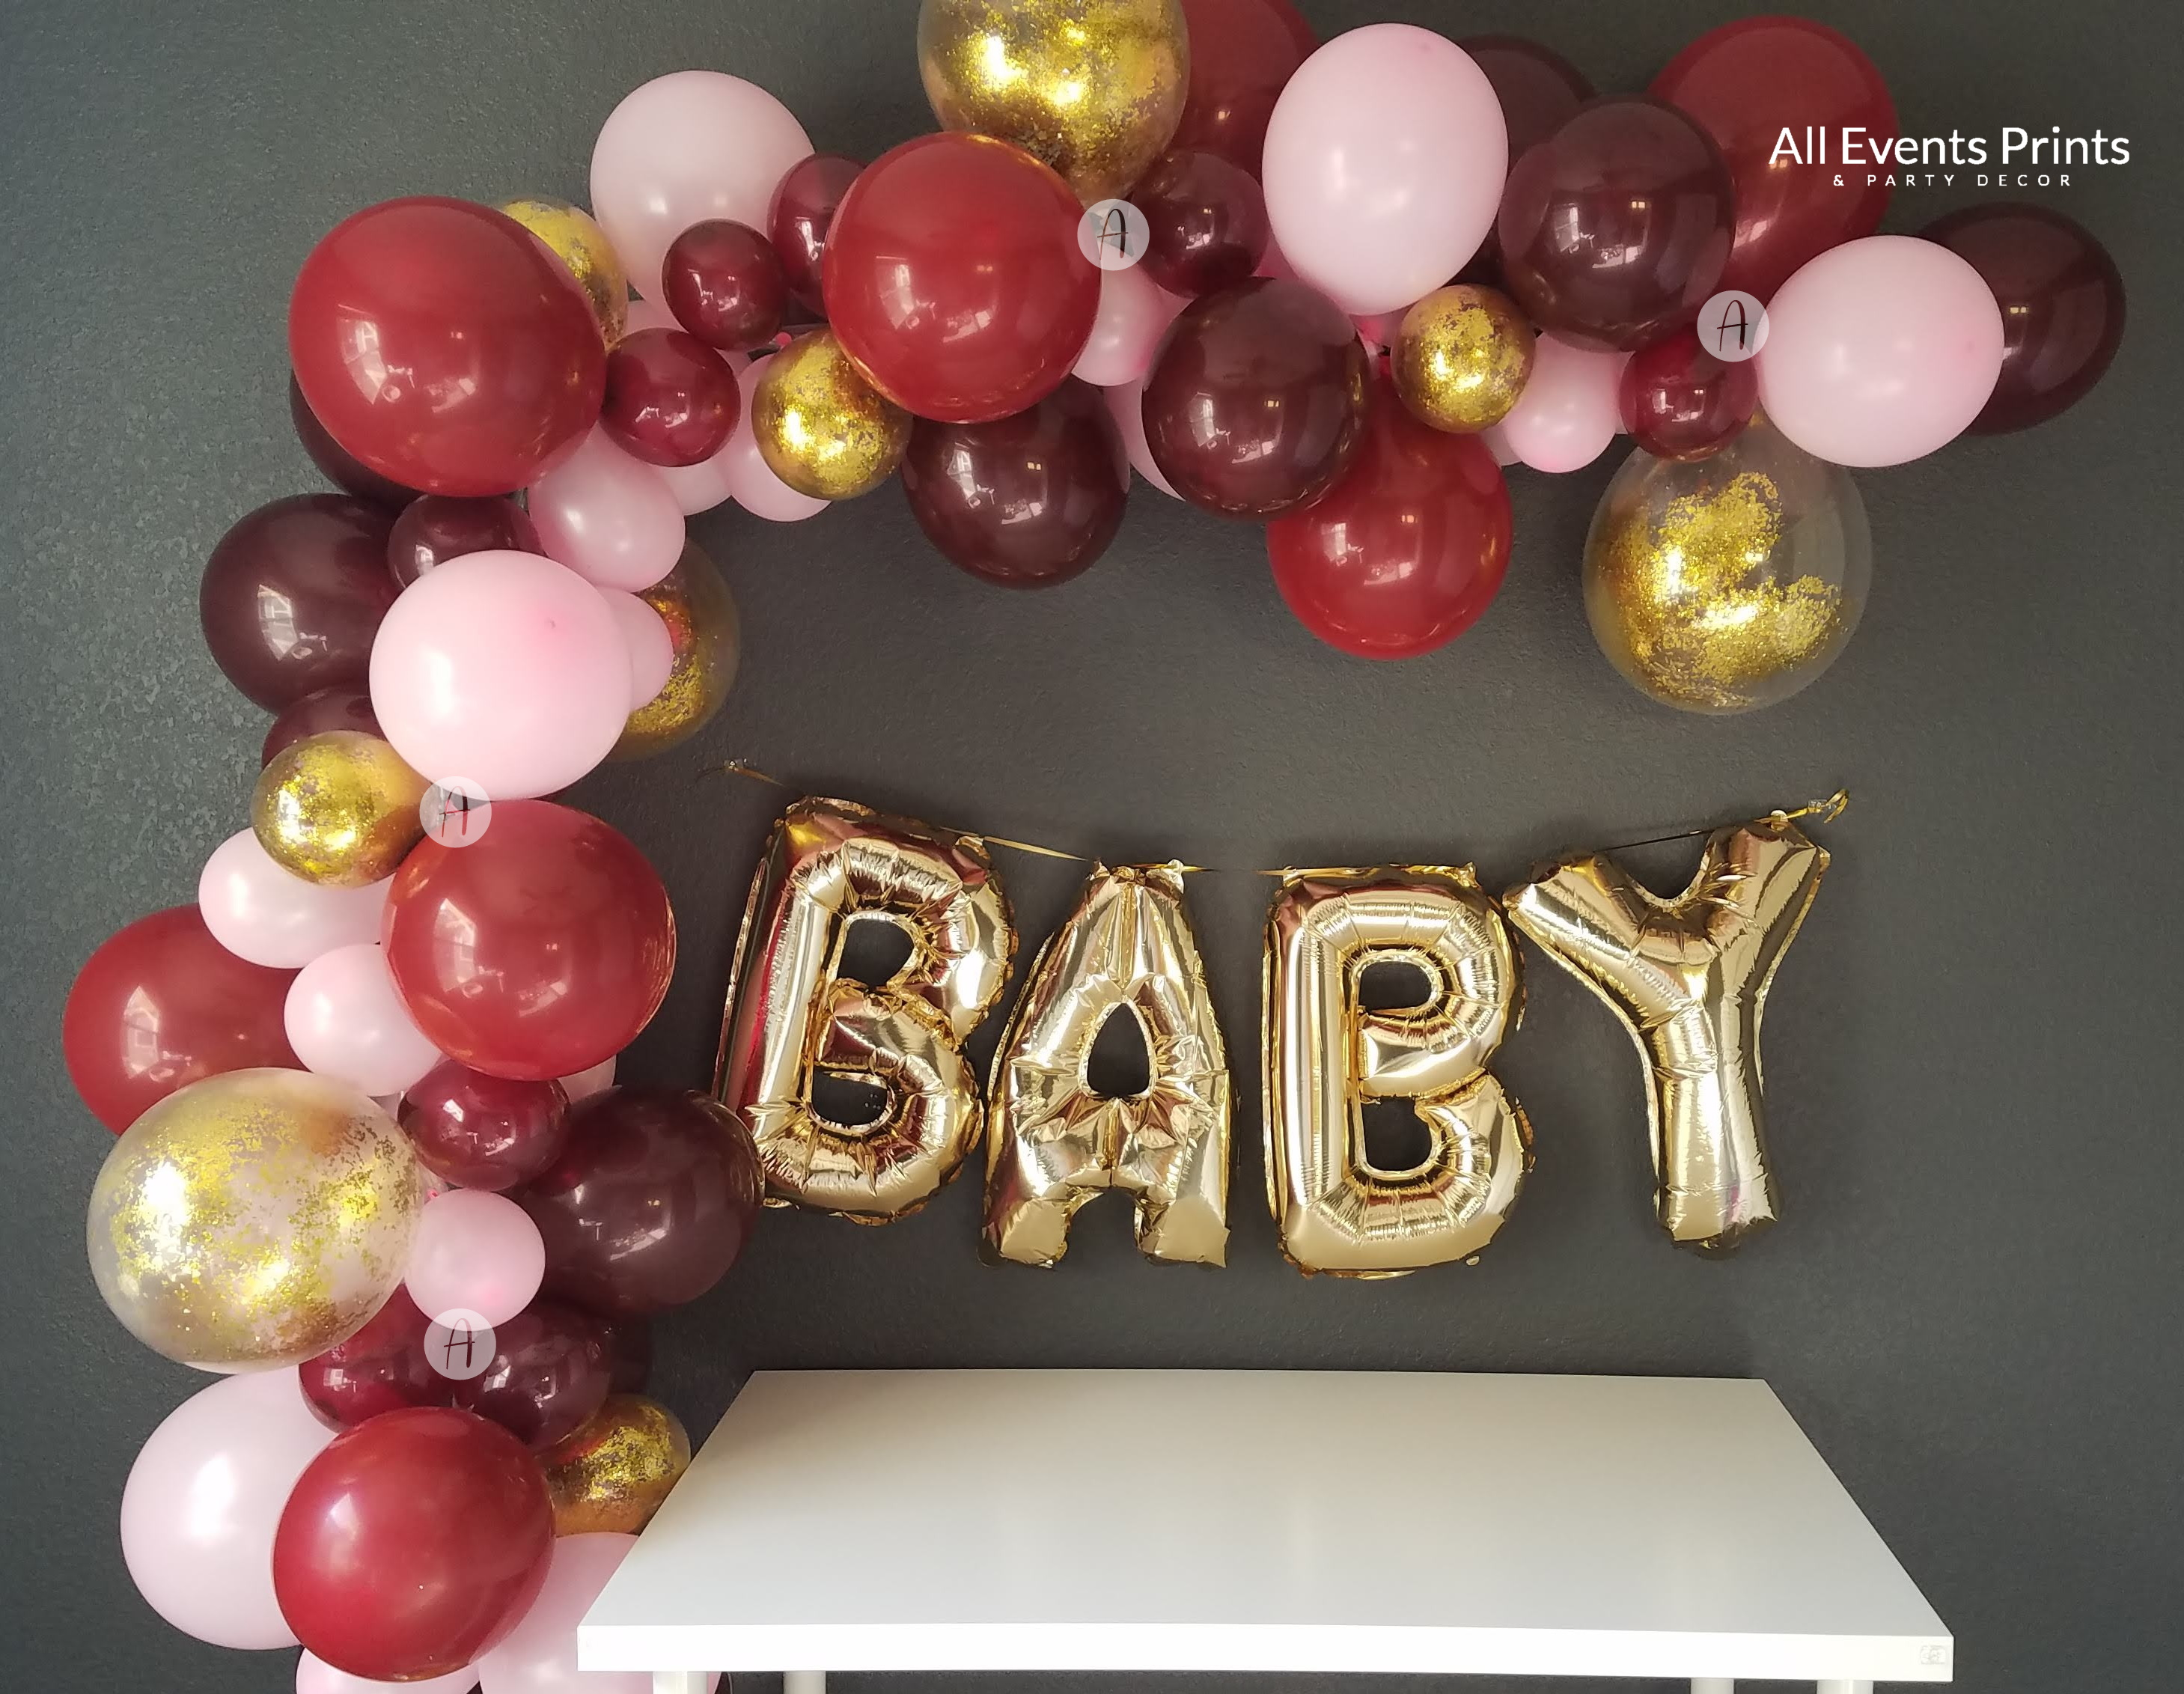 Premium Burgundy Balloon Garland Kit 5 Ft 20 Ft Includes Pump Finishing Kit All Events Prints Party Decor